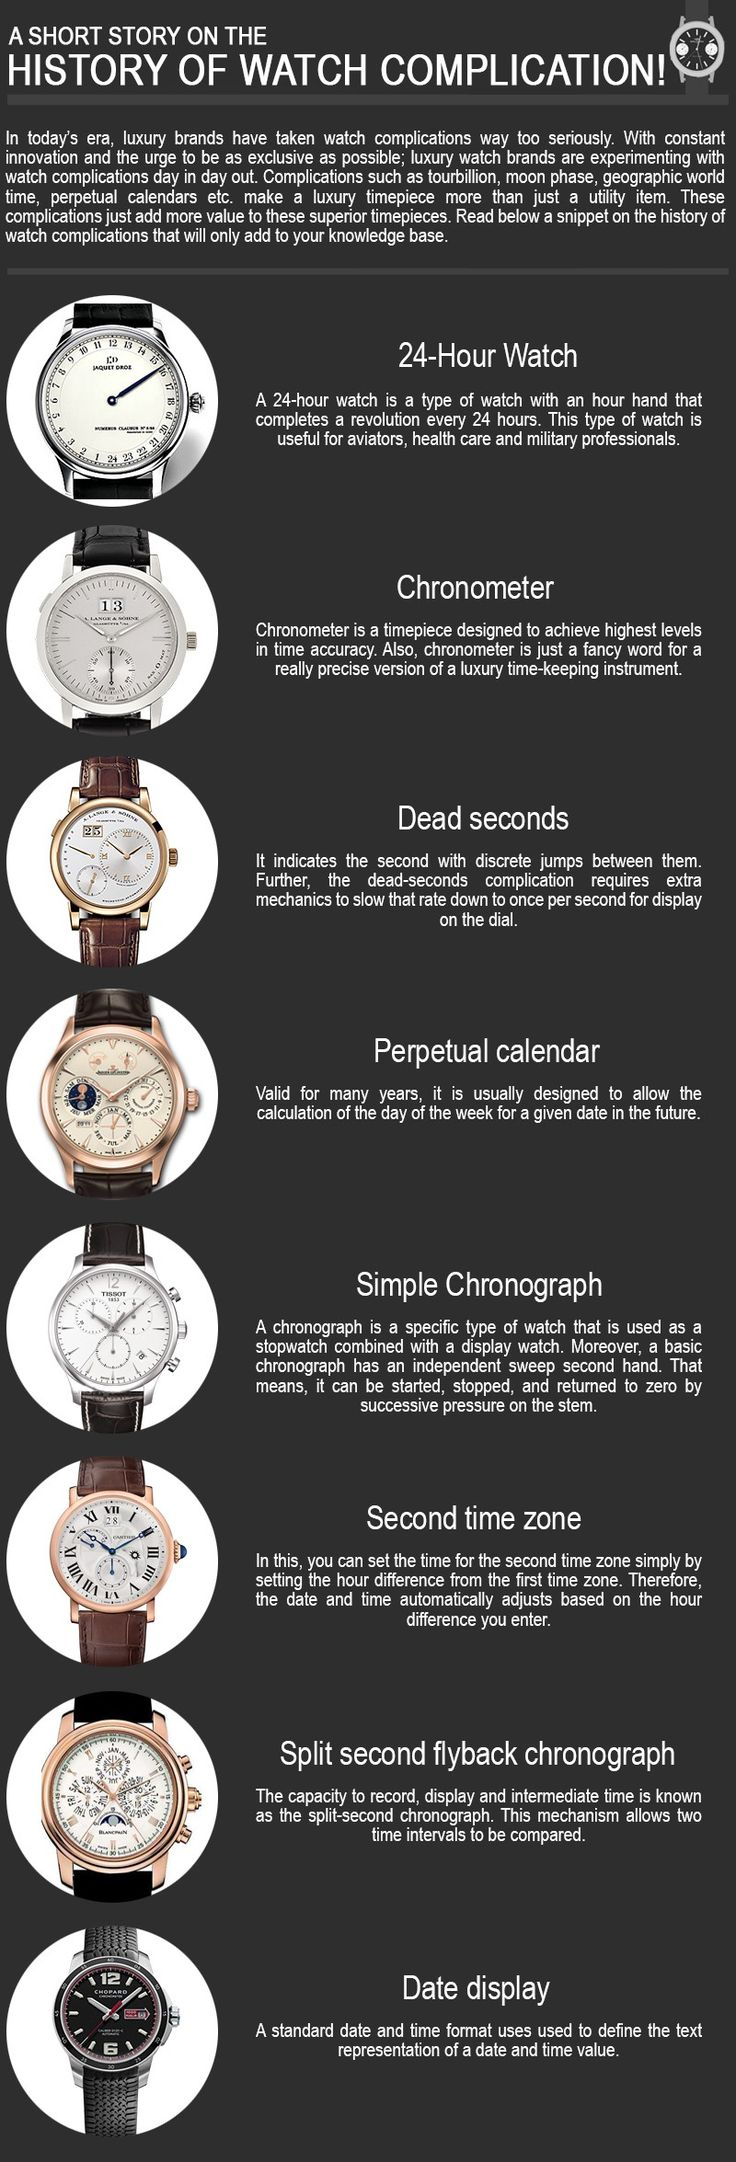 Luxury Watch Complications: A Guide by Johnson Watch